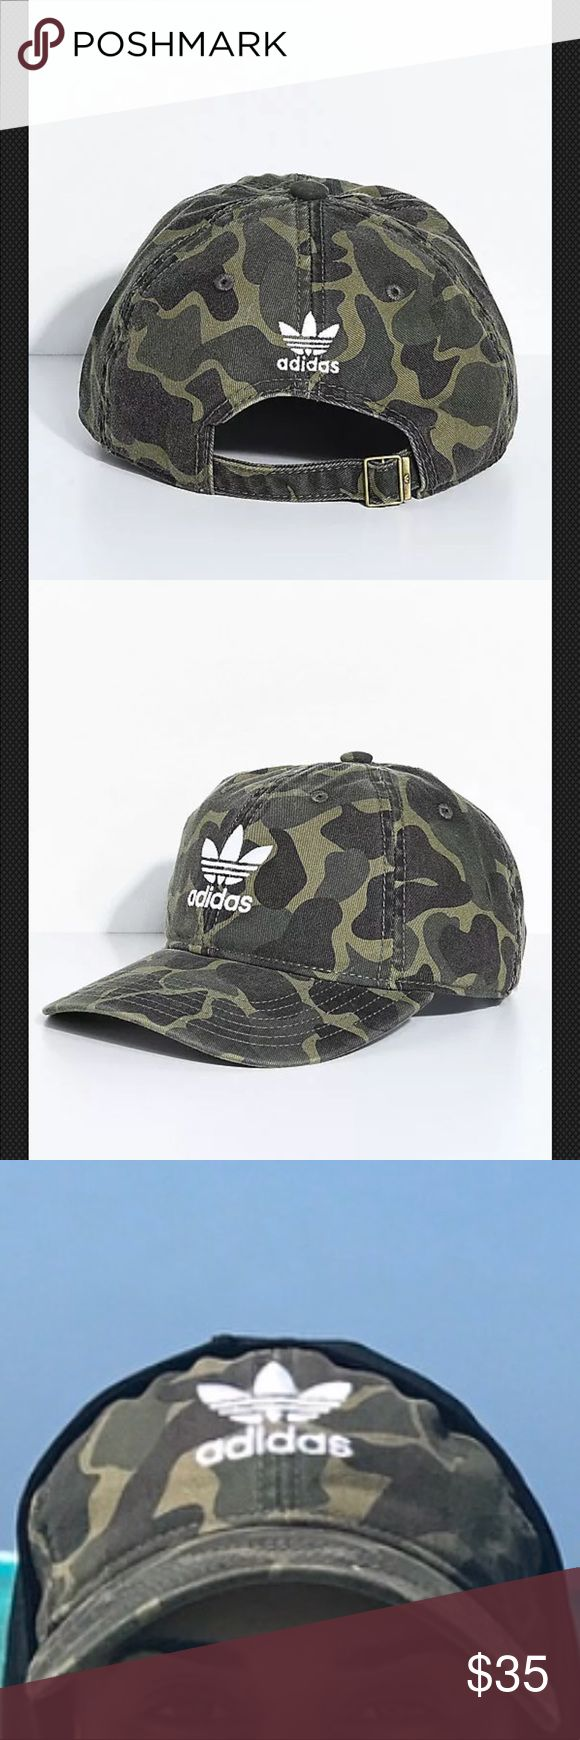 ADIDAS Originals Hat - Adidas Camouflage Hat - NWT Camo Dad Hat from adidas NEW WITH TAGS  Women's ADIDAS Originals Hat - Adidas Camouflage Hat - NWT  Trendy and comfortable, adidas presents the Camo dad hat for women. With a women's specific fit, this camo pattern hat has adjustable strapback sizing for a comfortable fit. The unstructured six panel crown is finished with a white logo graphic embroidered on the front.  Please note: due to lighting item may look slightly different color wise…